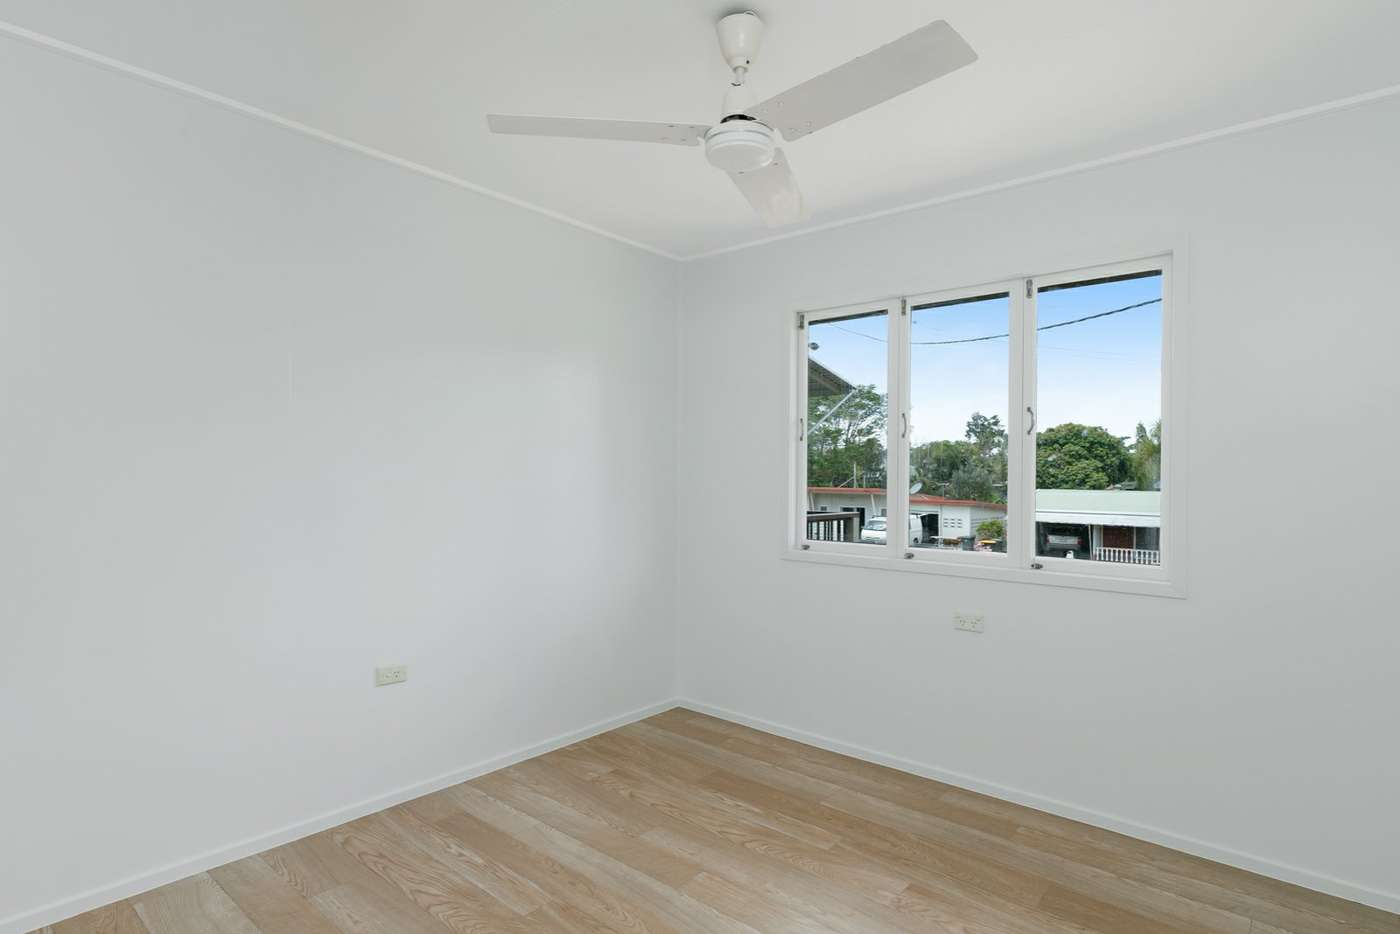 Sixth view of Homely house listing, 124 Wilkinson Street, Manunda QLD 4870